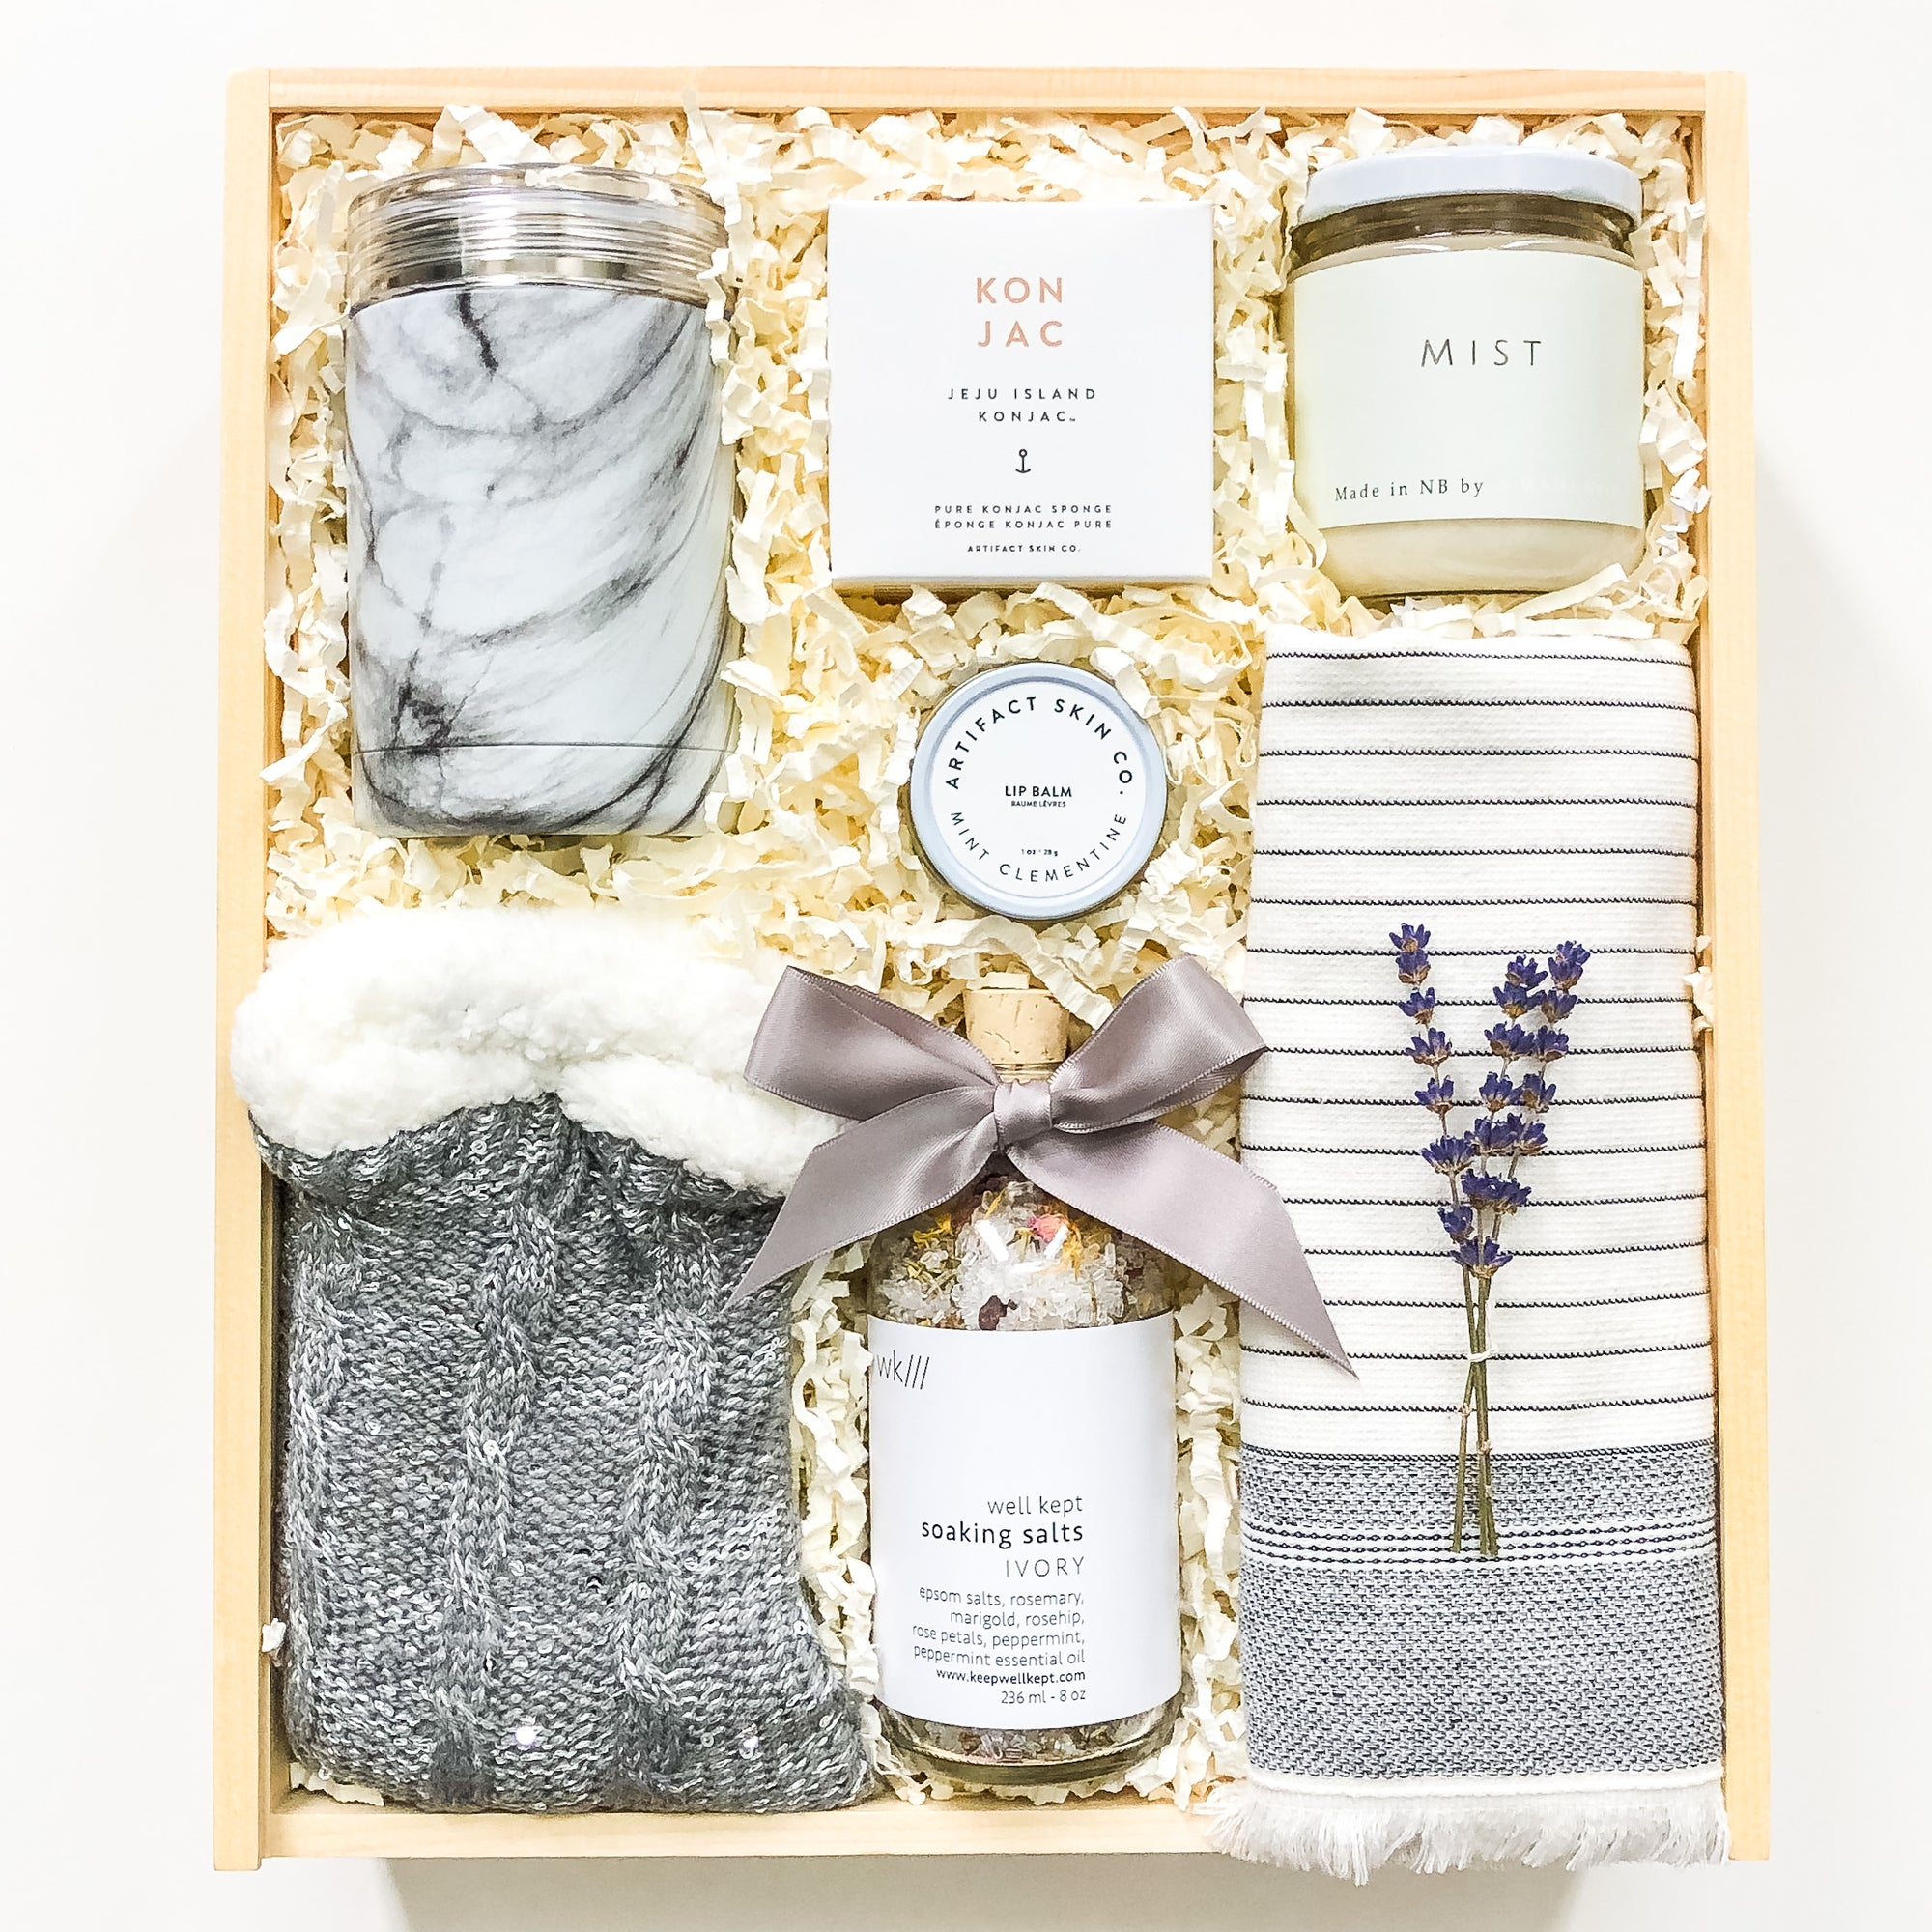 Wellness Gift, Wellness Gift Delivered, Shipped Wellness Gift, Self Care Gift, Healing Gift, Wellness Gift Basket, Wellness Gift Box, Healing Gift Basket, Healing Gift Box, Self Care Gift Box, Self Care Gift Basket,Sympathy Gift, Sympathy Gift Delivery, Thinking Of You Gift, Thinking of You Gift Delivered, Shipped Sympathy Gift